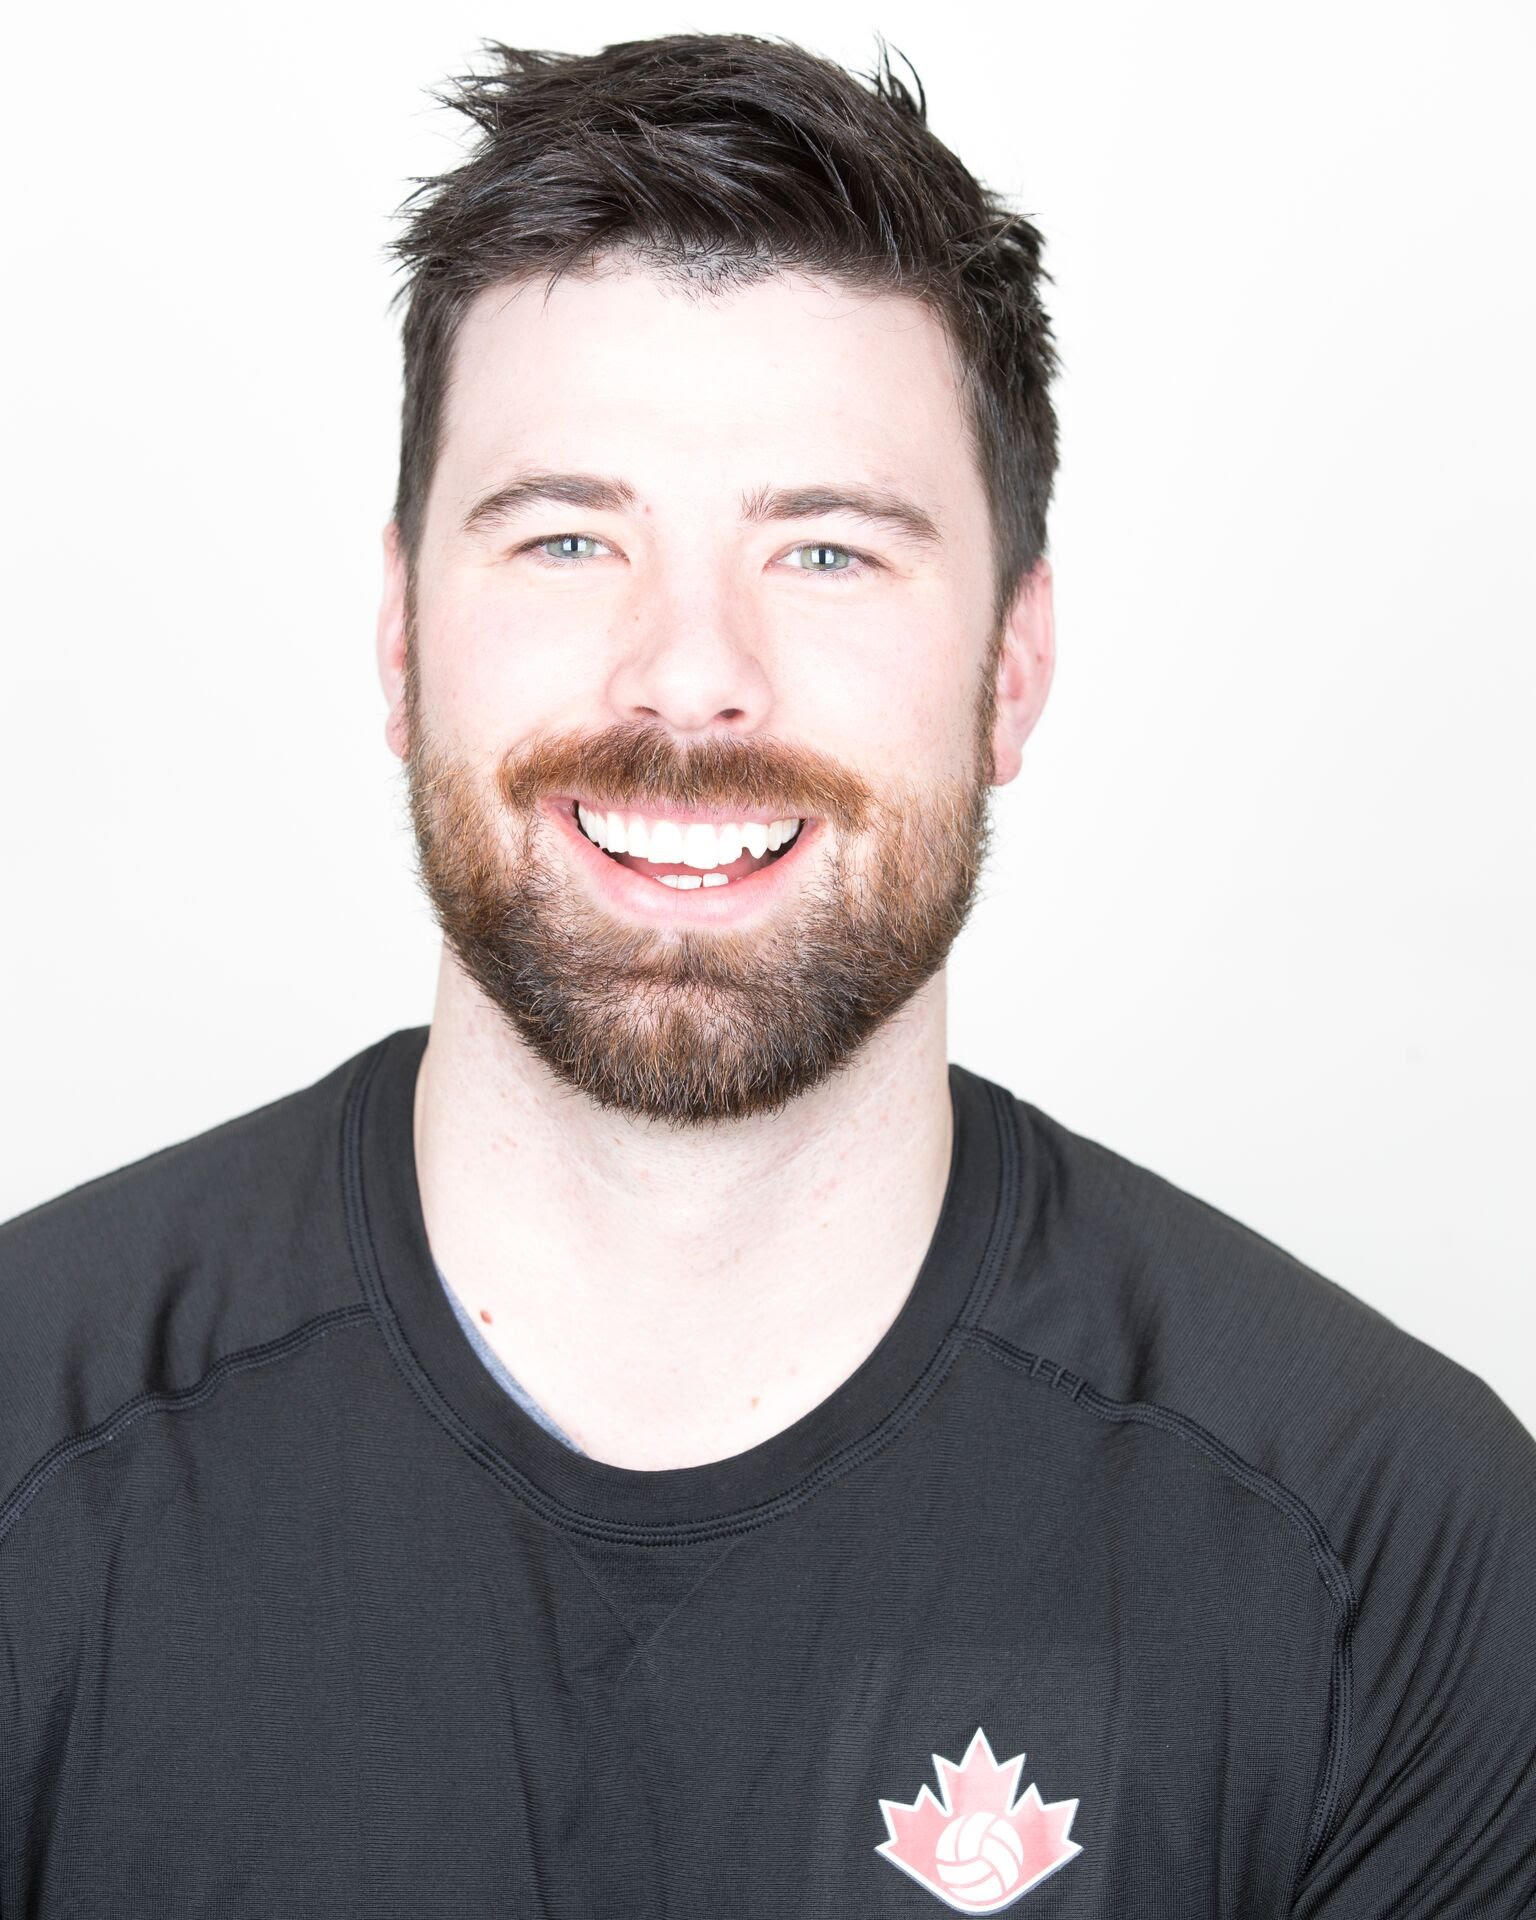 Ryan MacDonald Headshot.JPG